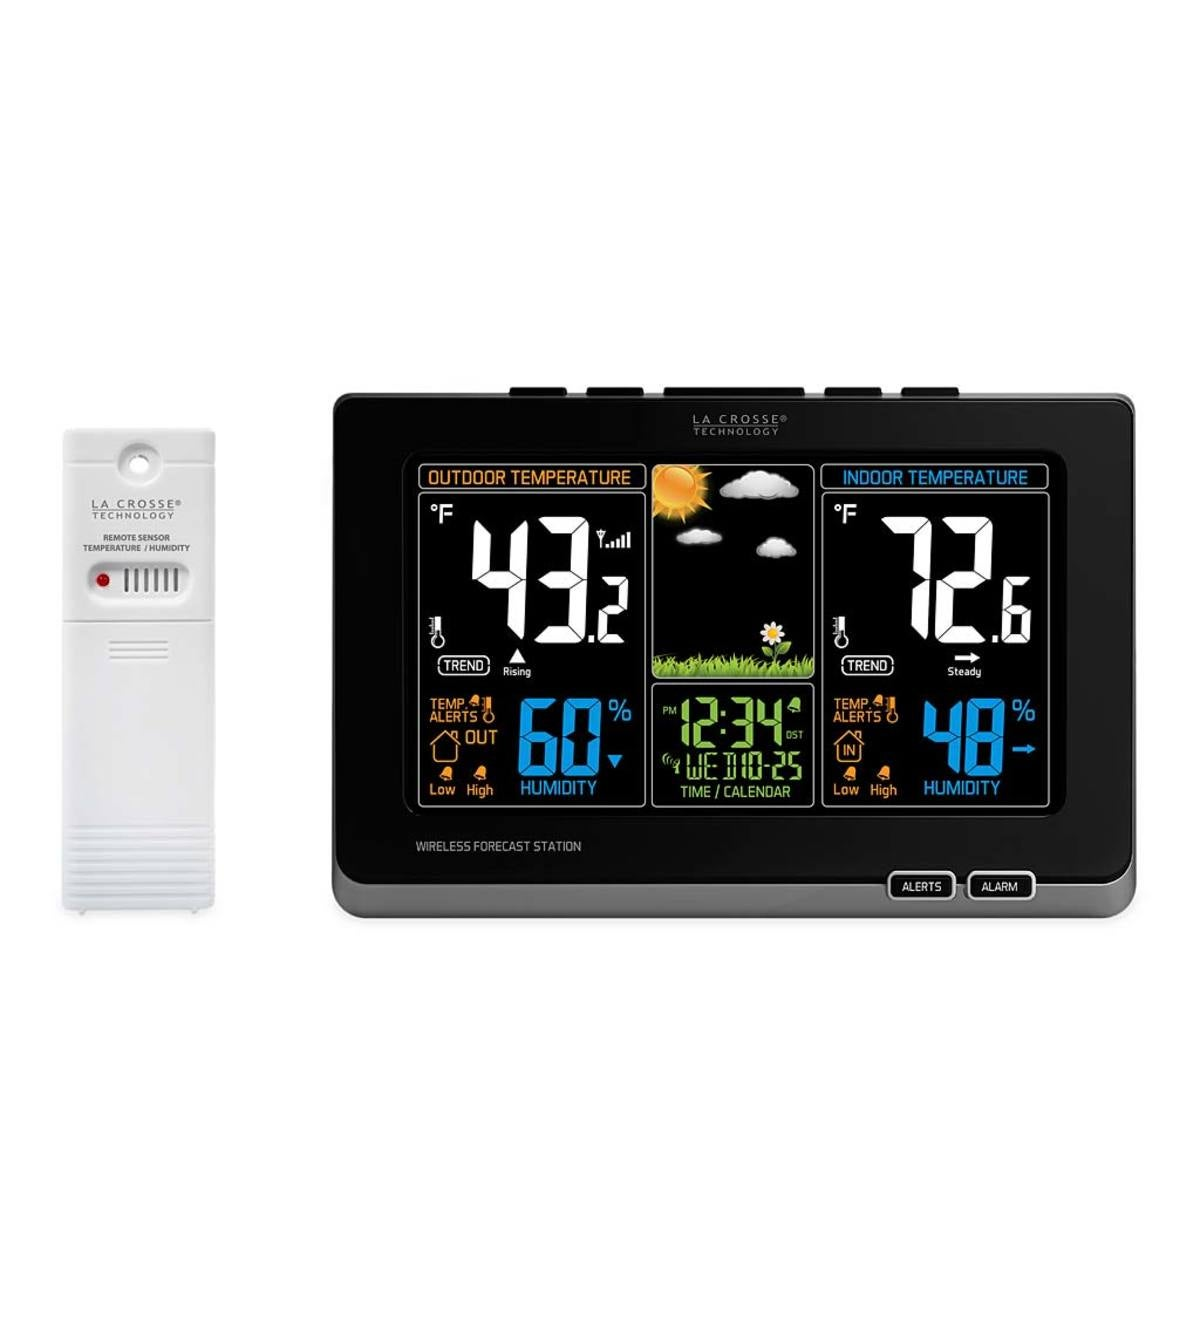 La Crosse Color-Display Weather Station with Wireless Outdoor Remote Sensore - Black